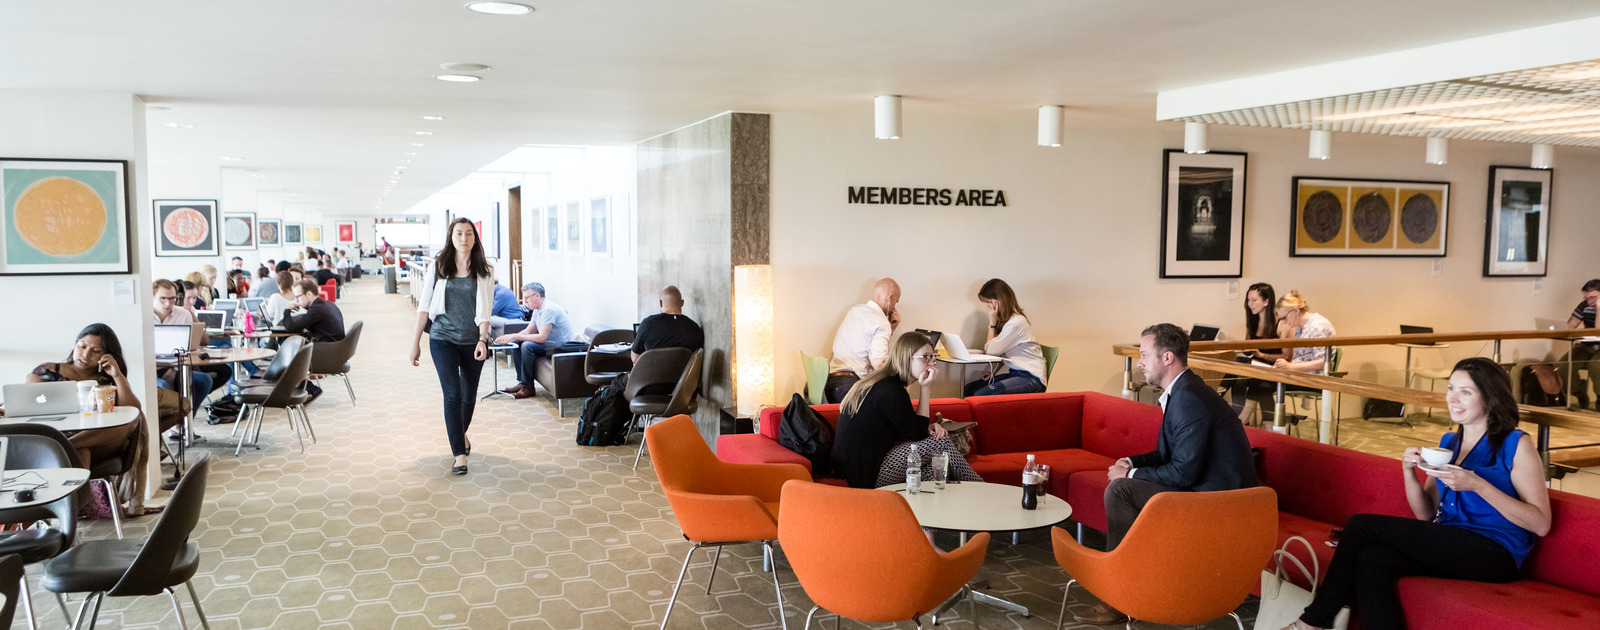 Members in the member's area of the Southbank Centre